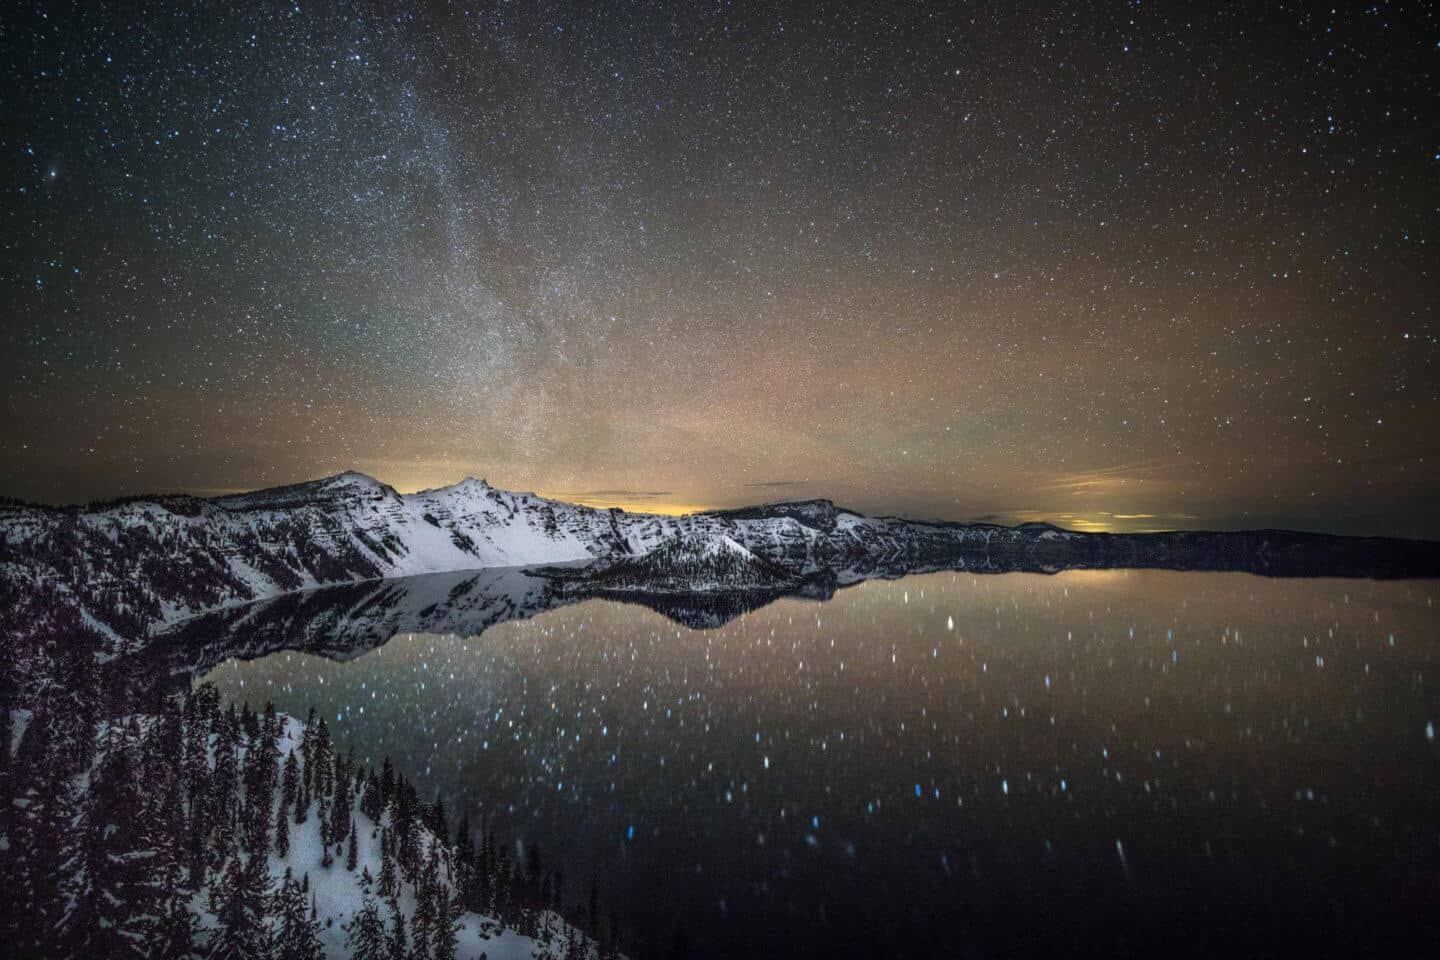 Star filled astrophotography photo of Crater Lake National Park at night.